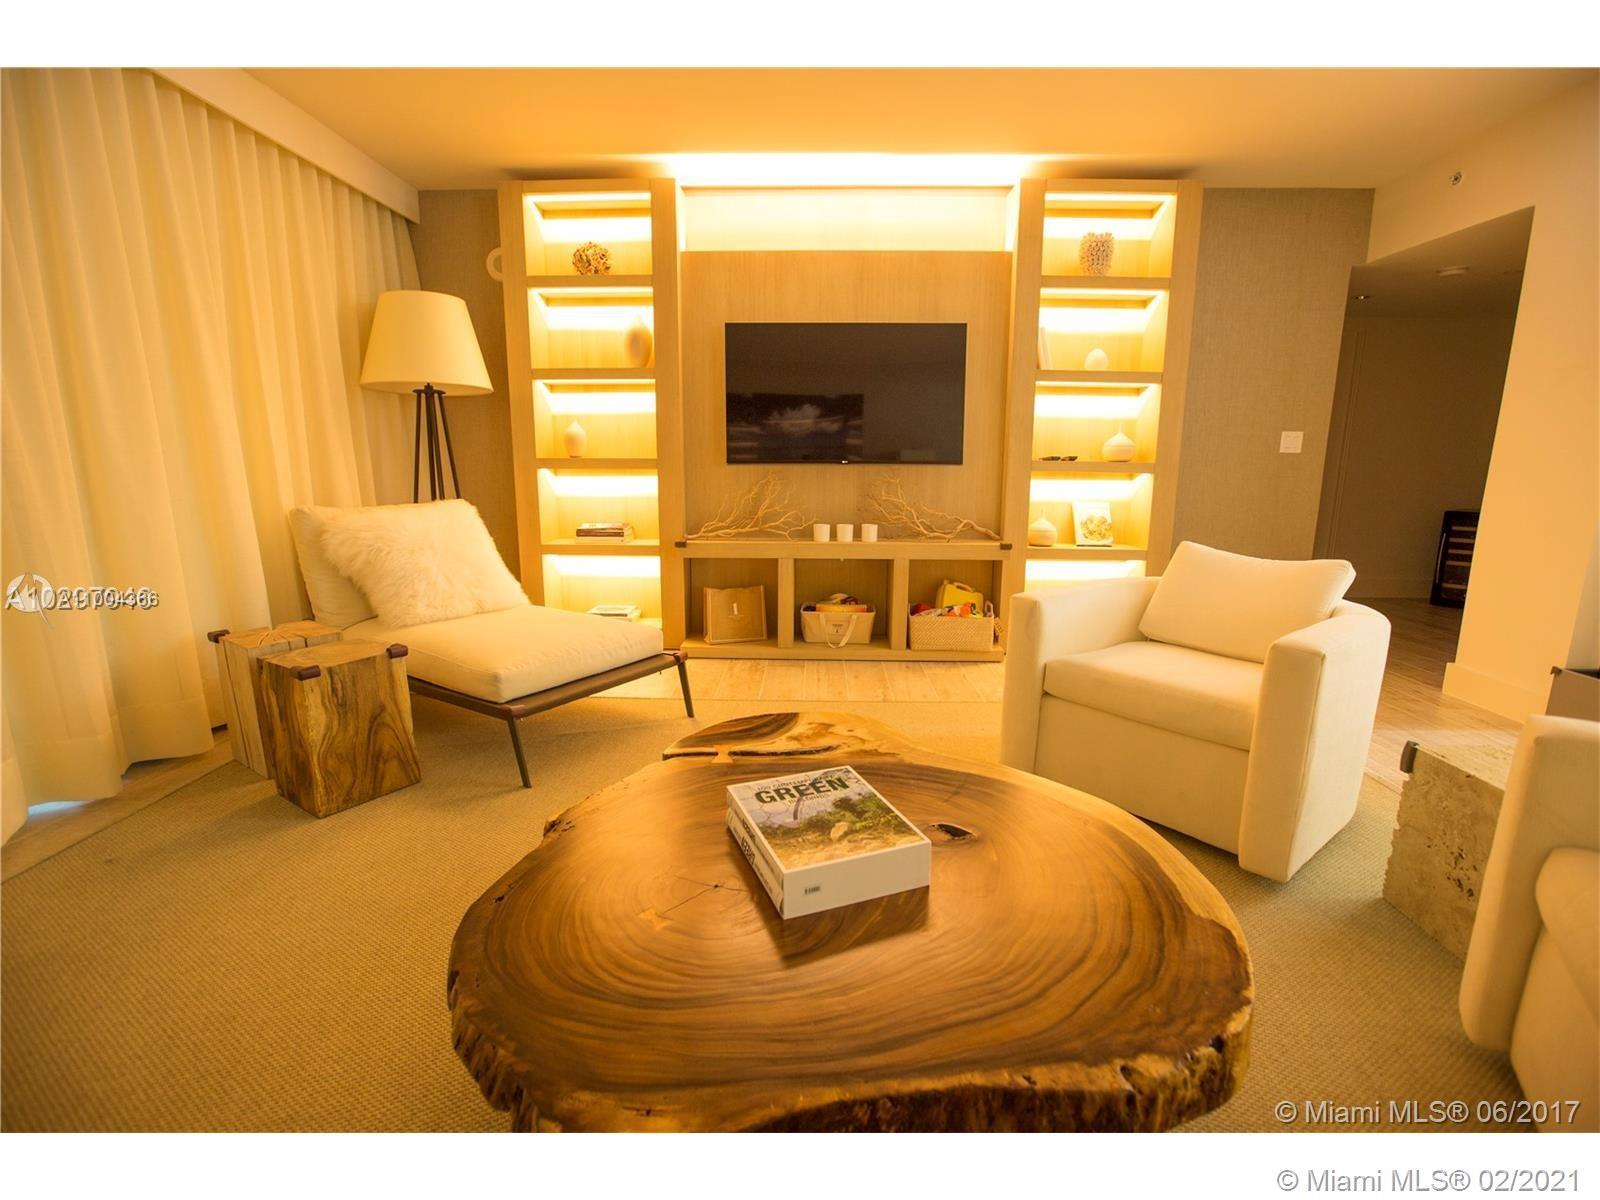 Turn Key Unit Furnished by Deborah Aguiar Ocean view at 1 Hotel & Homes South Beach! 1,605 square fo